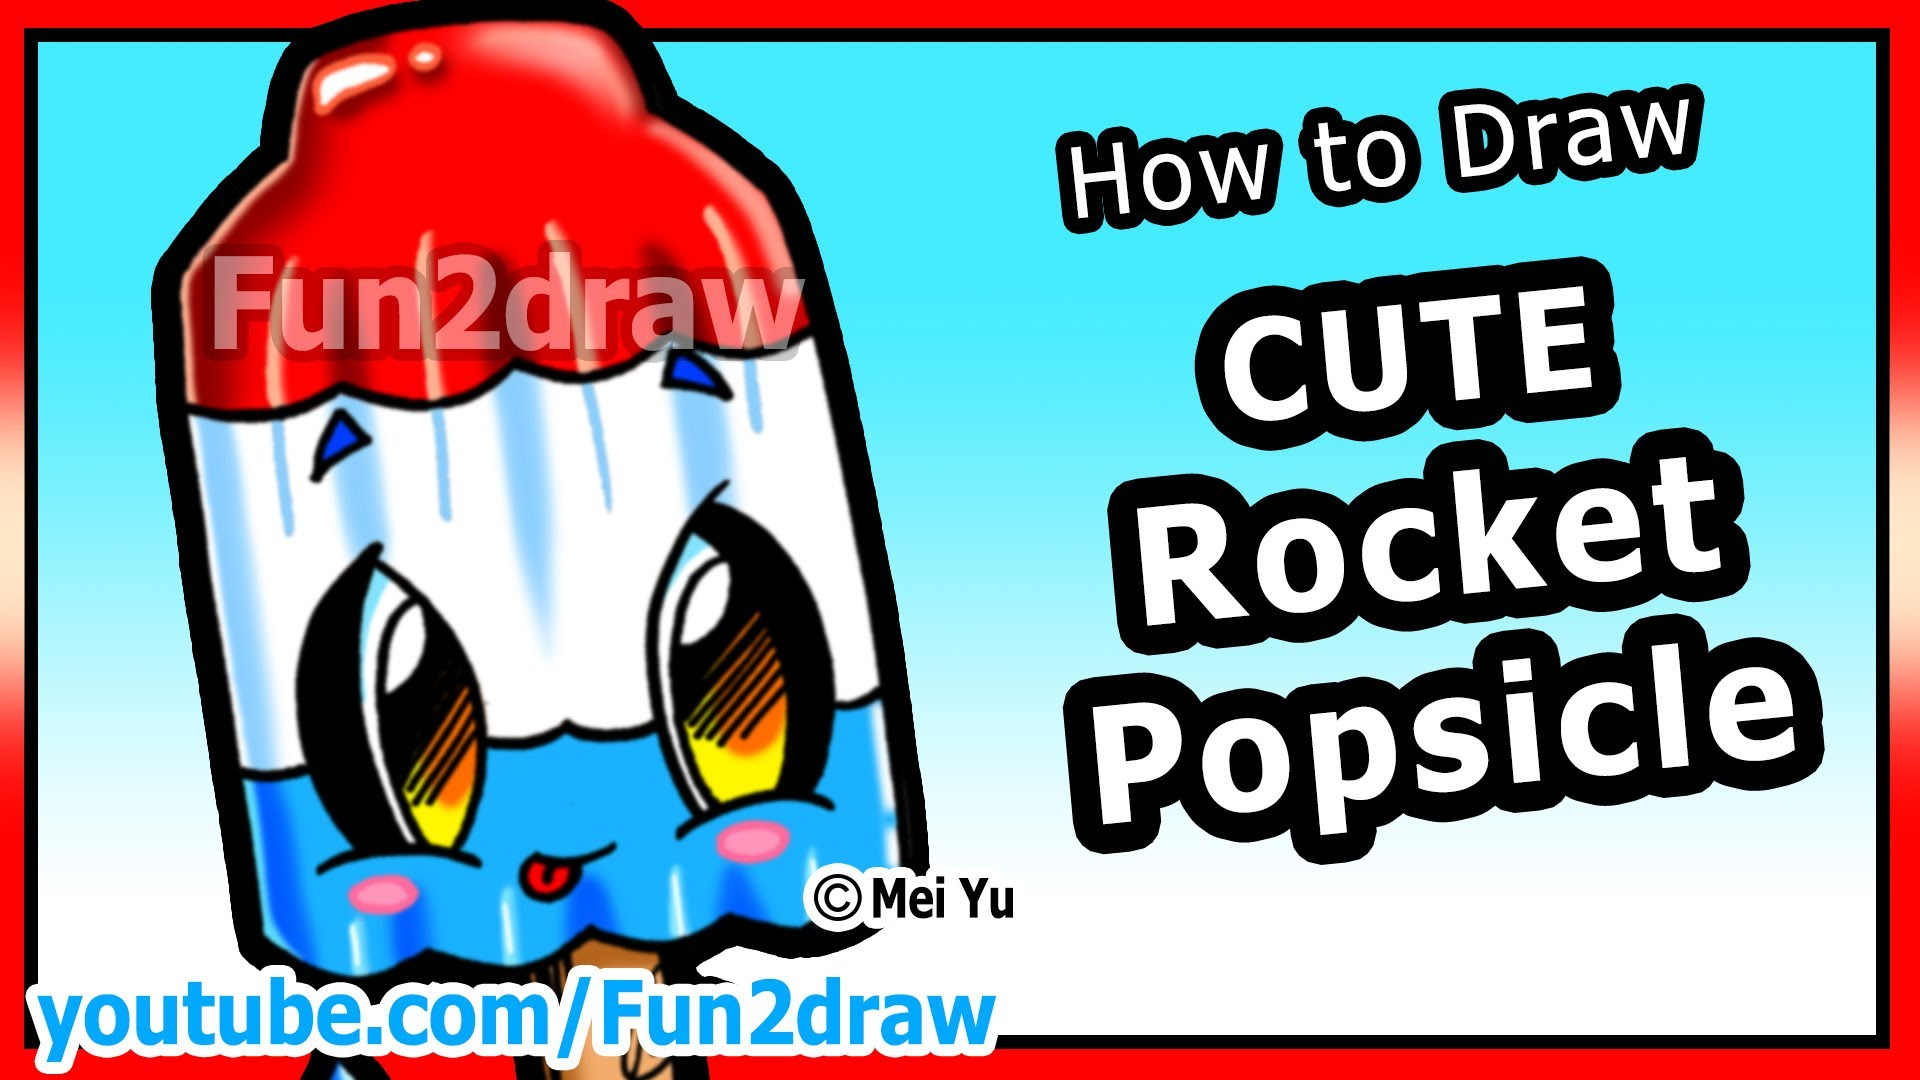 Popsicle clipart summer food Rocket Summer Fun2draw & Summer